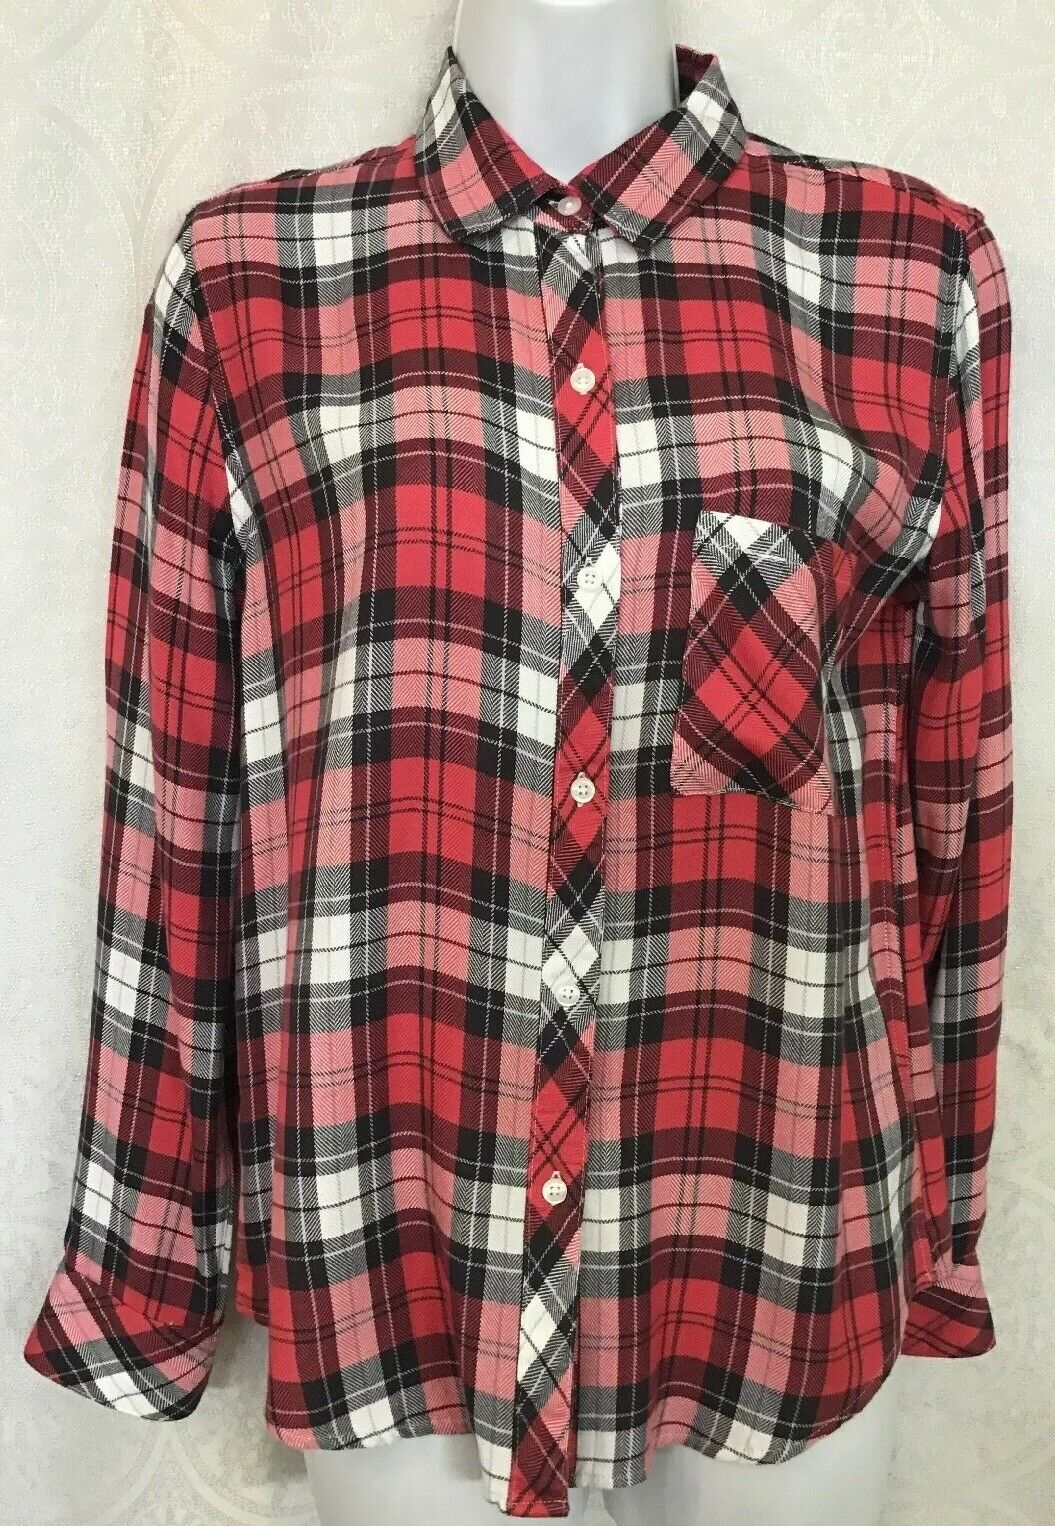 Rails Shirt Hunter Ash Scarlet And Weiß Plaid Long sleeve Größe XS  Nwt